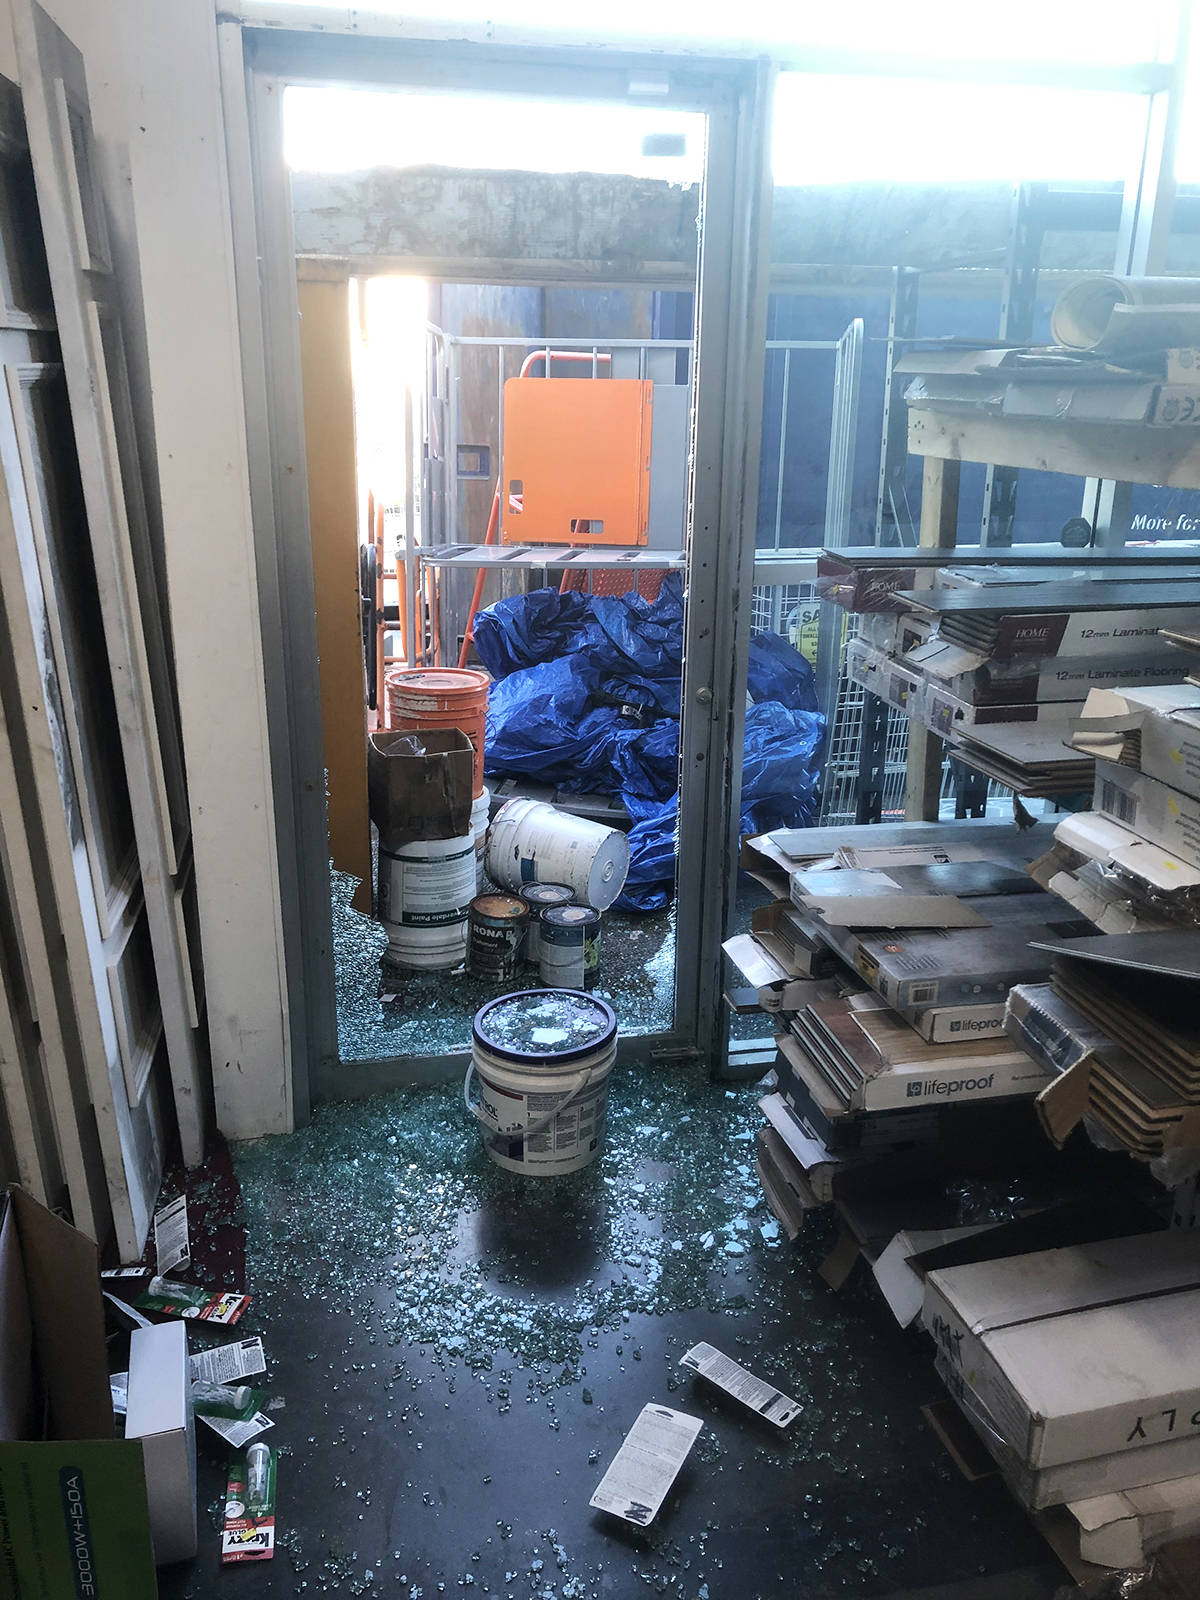 Shattered glass marks the spot where thieves broke into the Langley Habitat for Humanity ReStore. It was discovered Monday, April 5 when staff arrived in the morning (Special to Langley Advance Times)